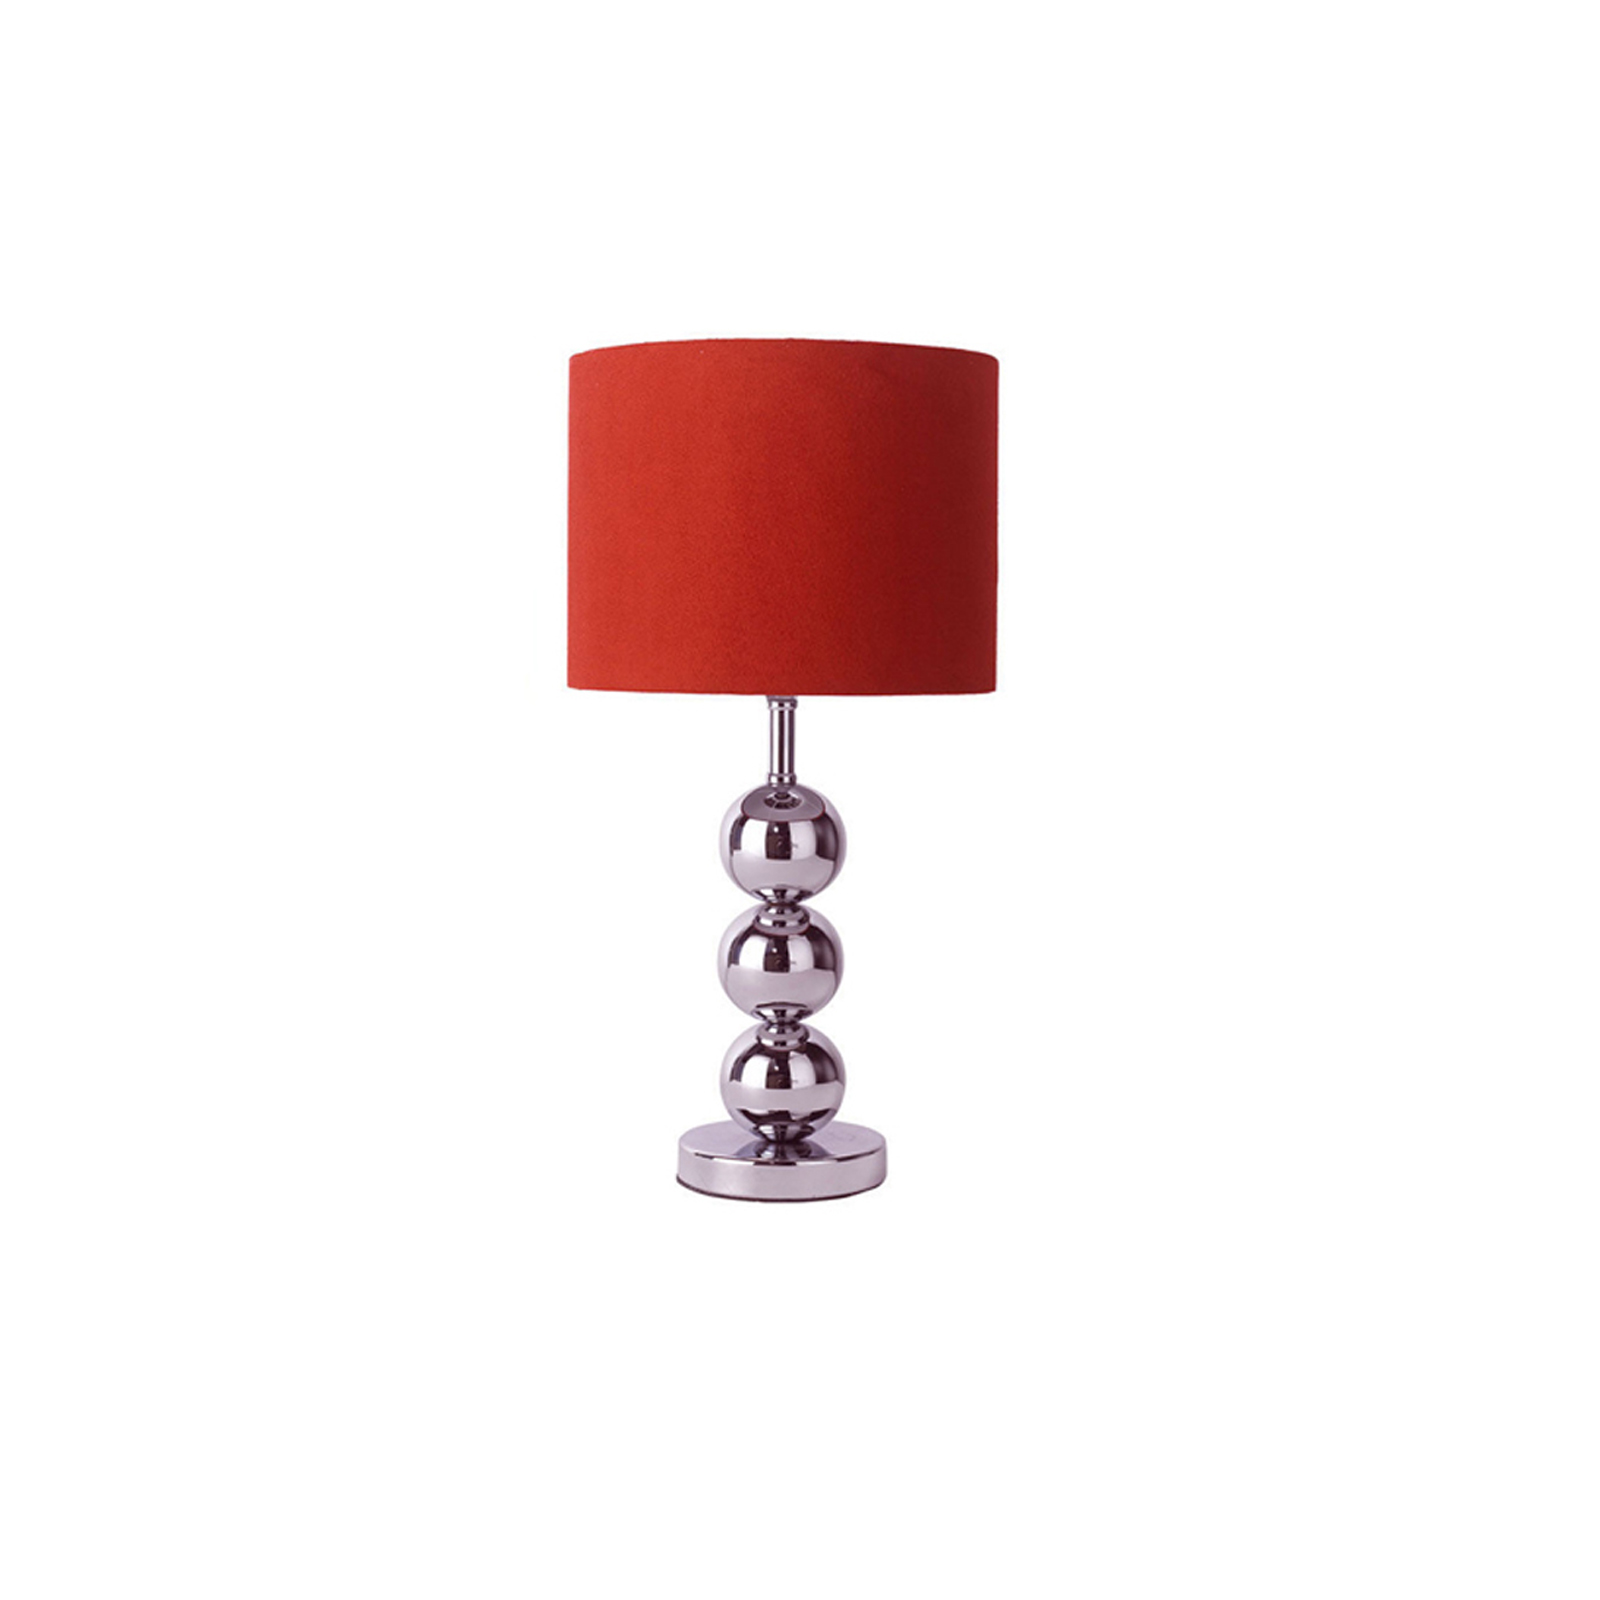 Modern Table Lamps Uk Floor Light Table Lamp Ceiling Shade Suede Shades